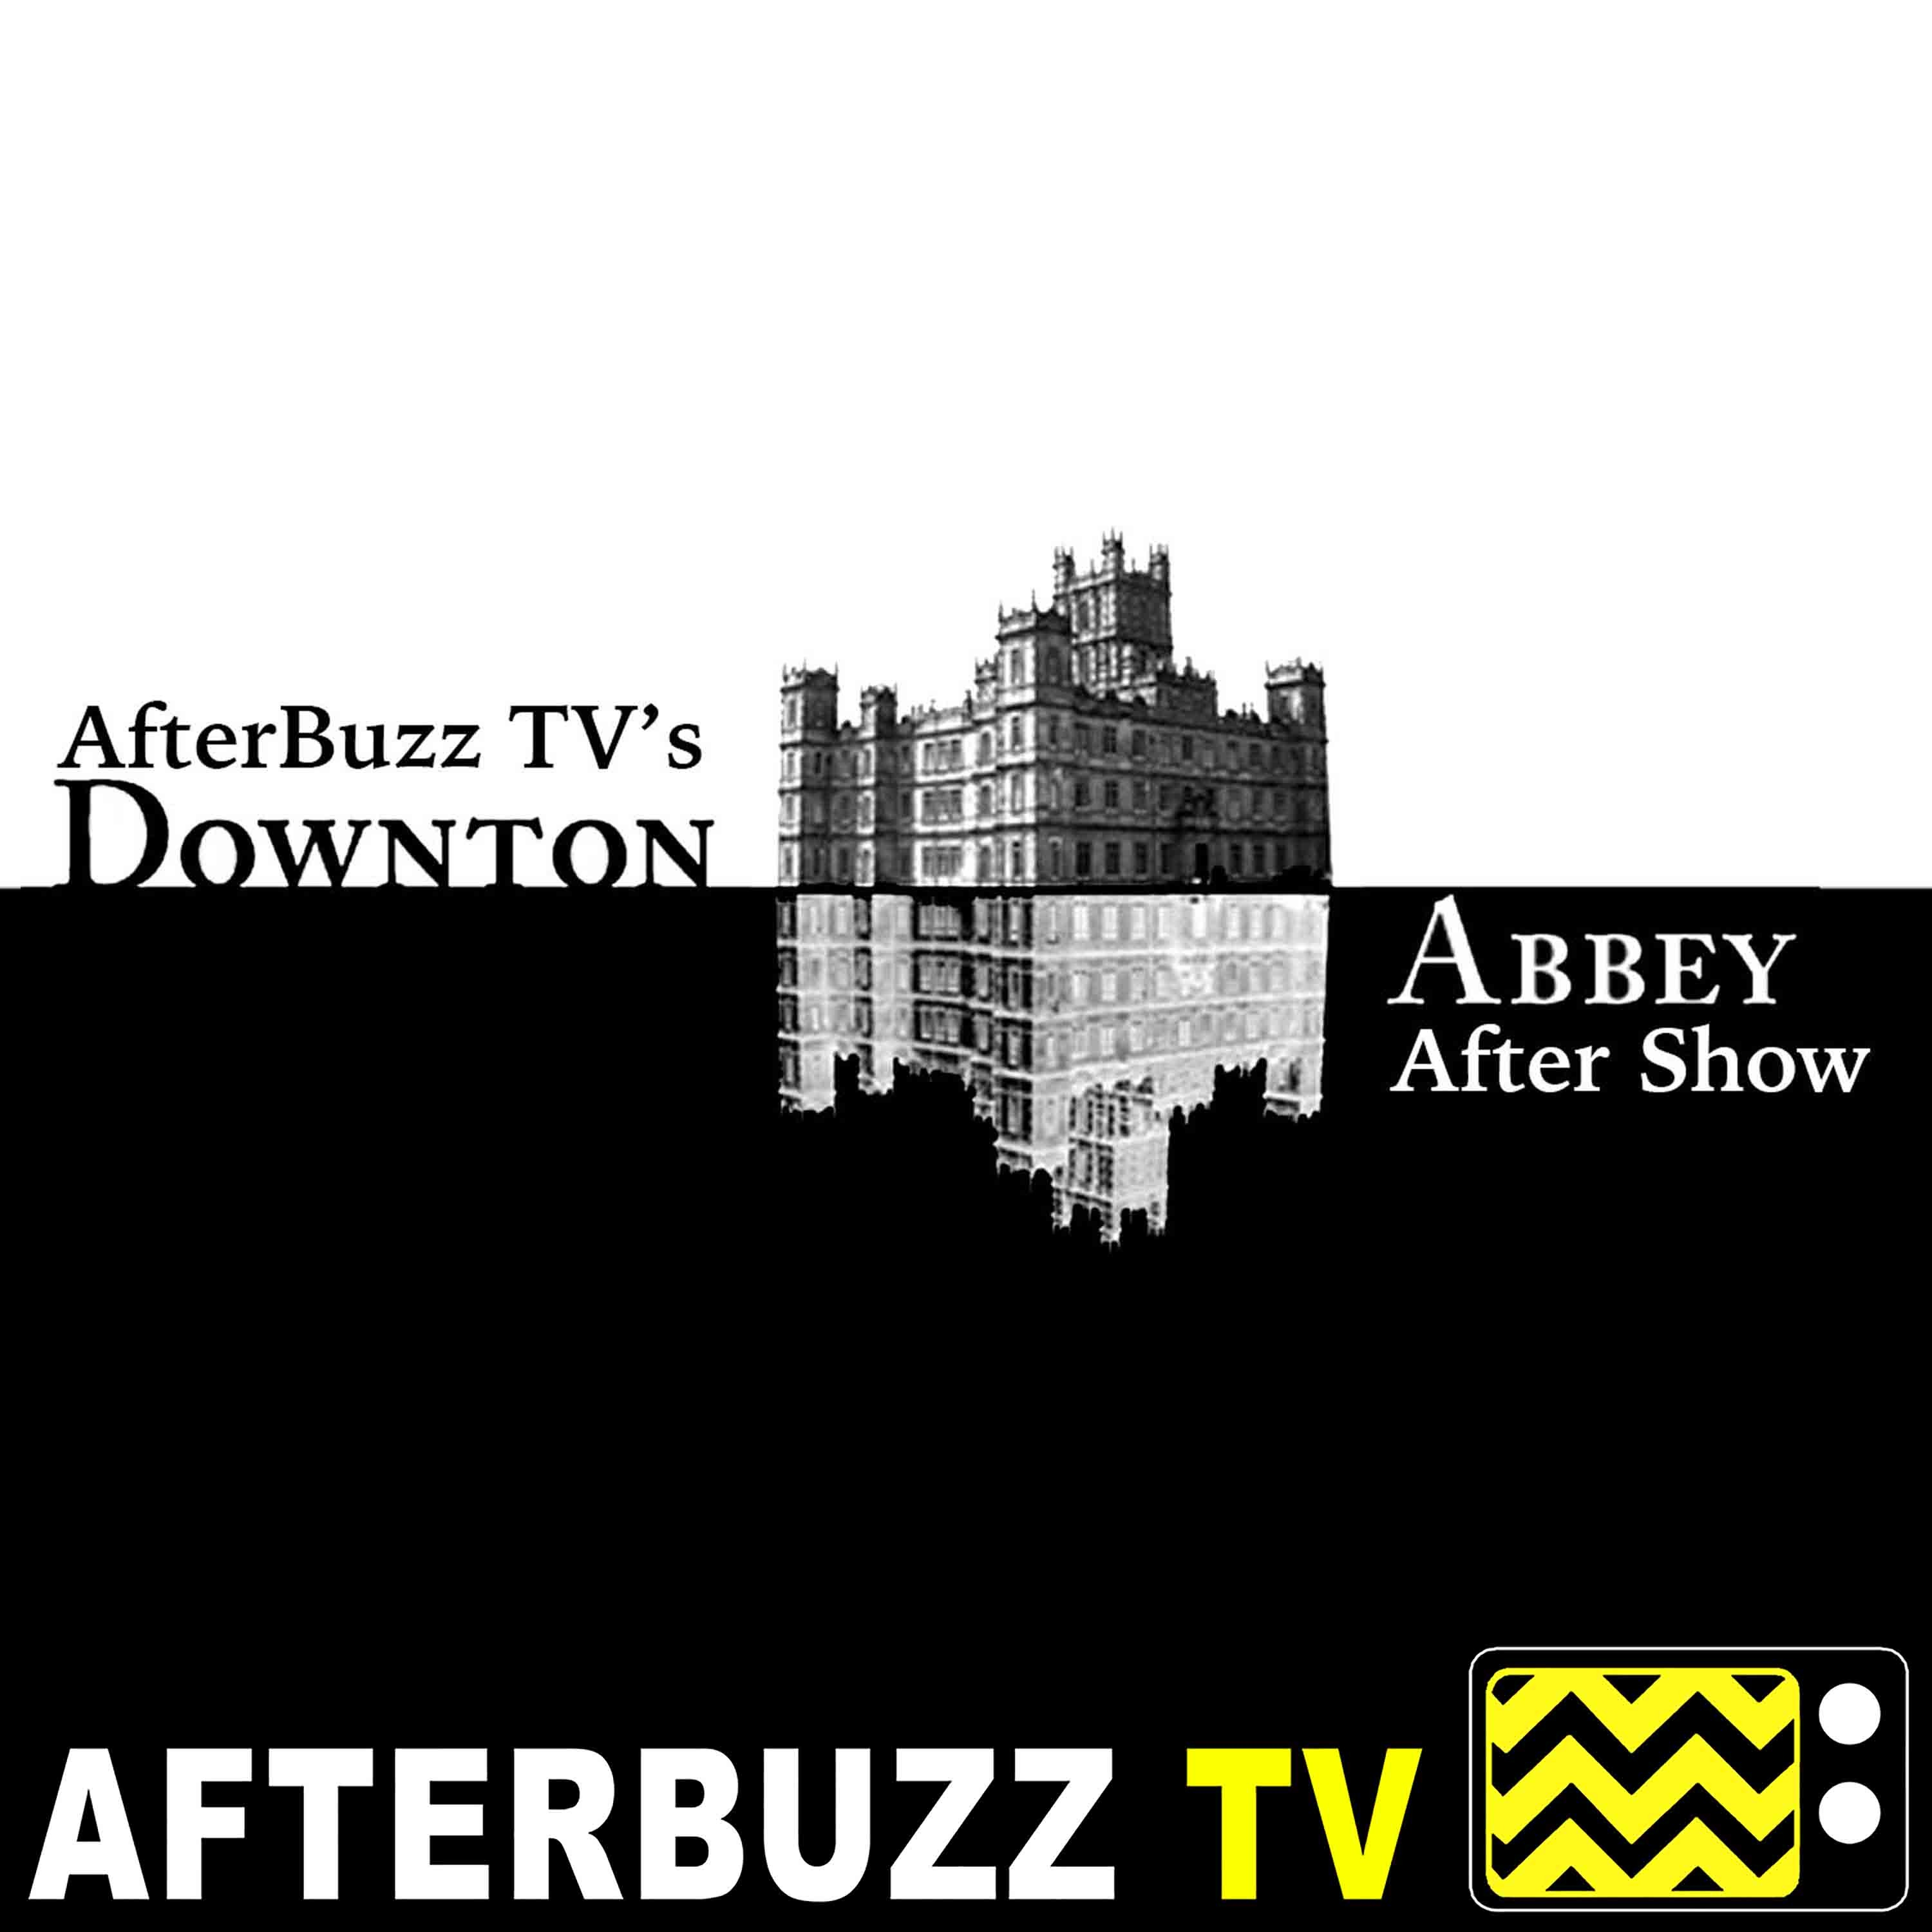 Downton Abbey UK S:6 | Episode 1 | AfterBuzz TV AfterShow